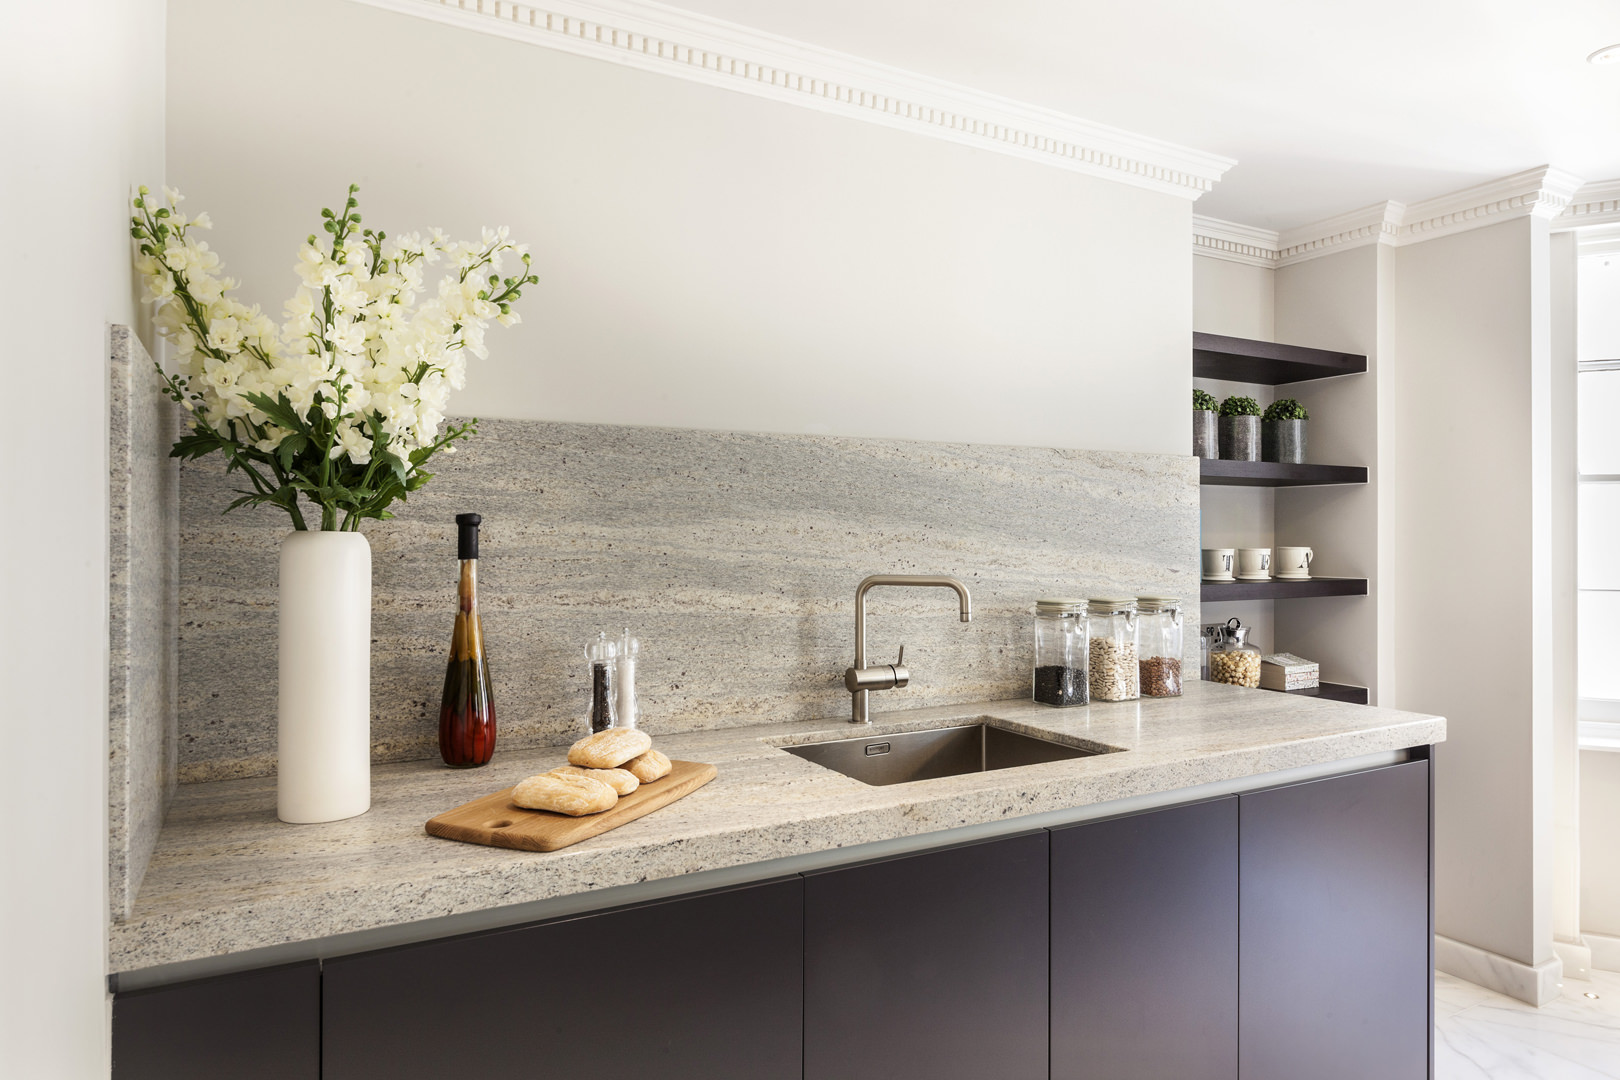 New 2/3 bedroom apartments were created to the highest of specifications within the constraints of a listed building in Soho's conservation area, including roof terraces, basement courtyards and balconies